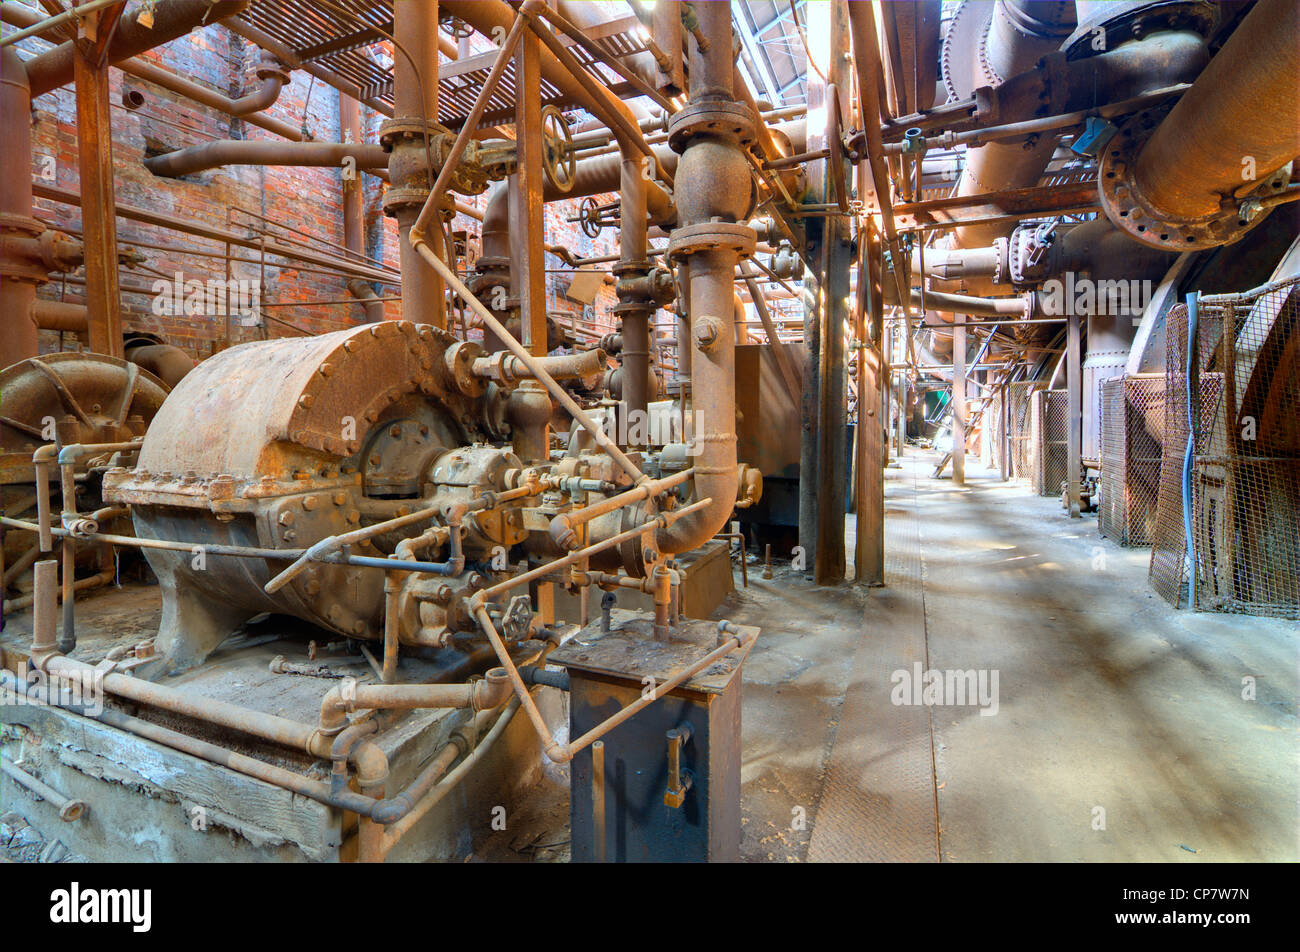 Old steel mill interior machinery - Stock Image